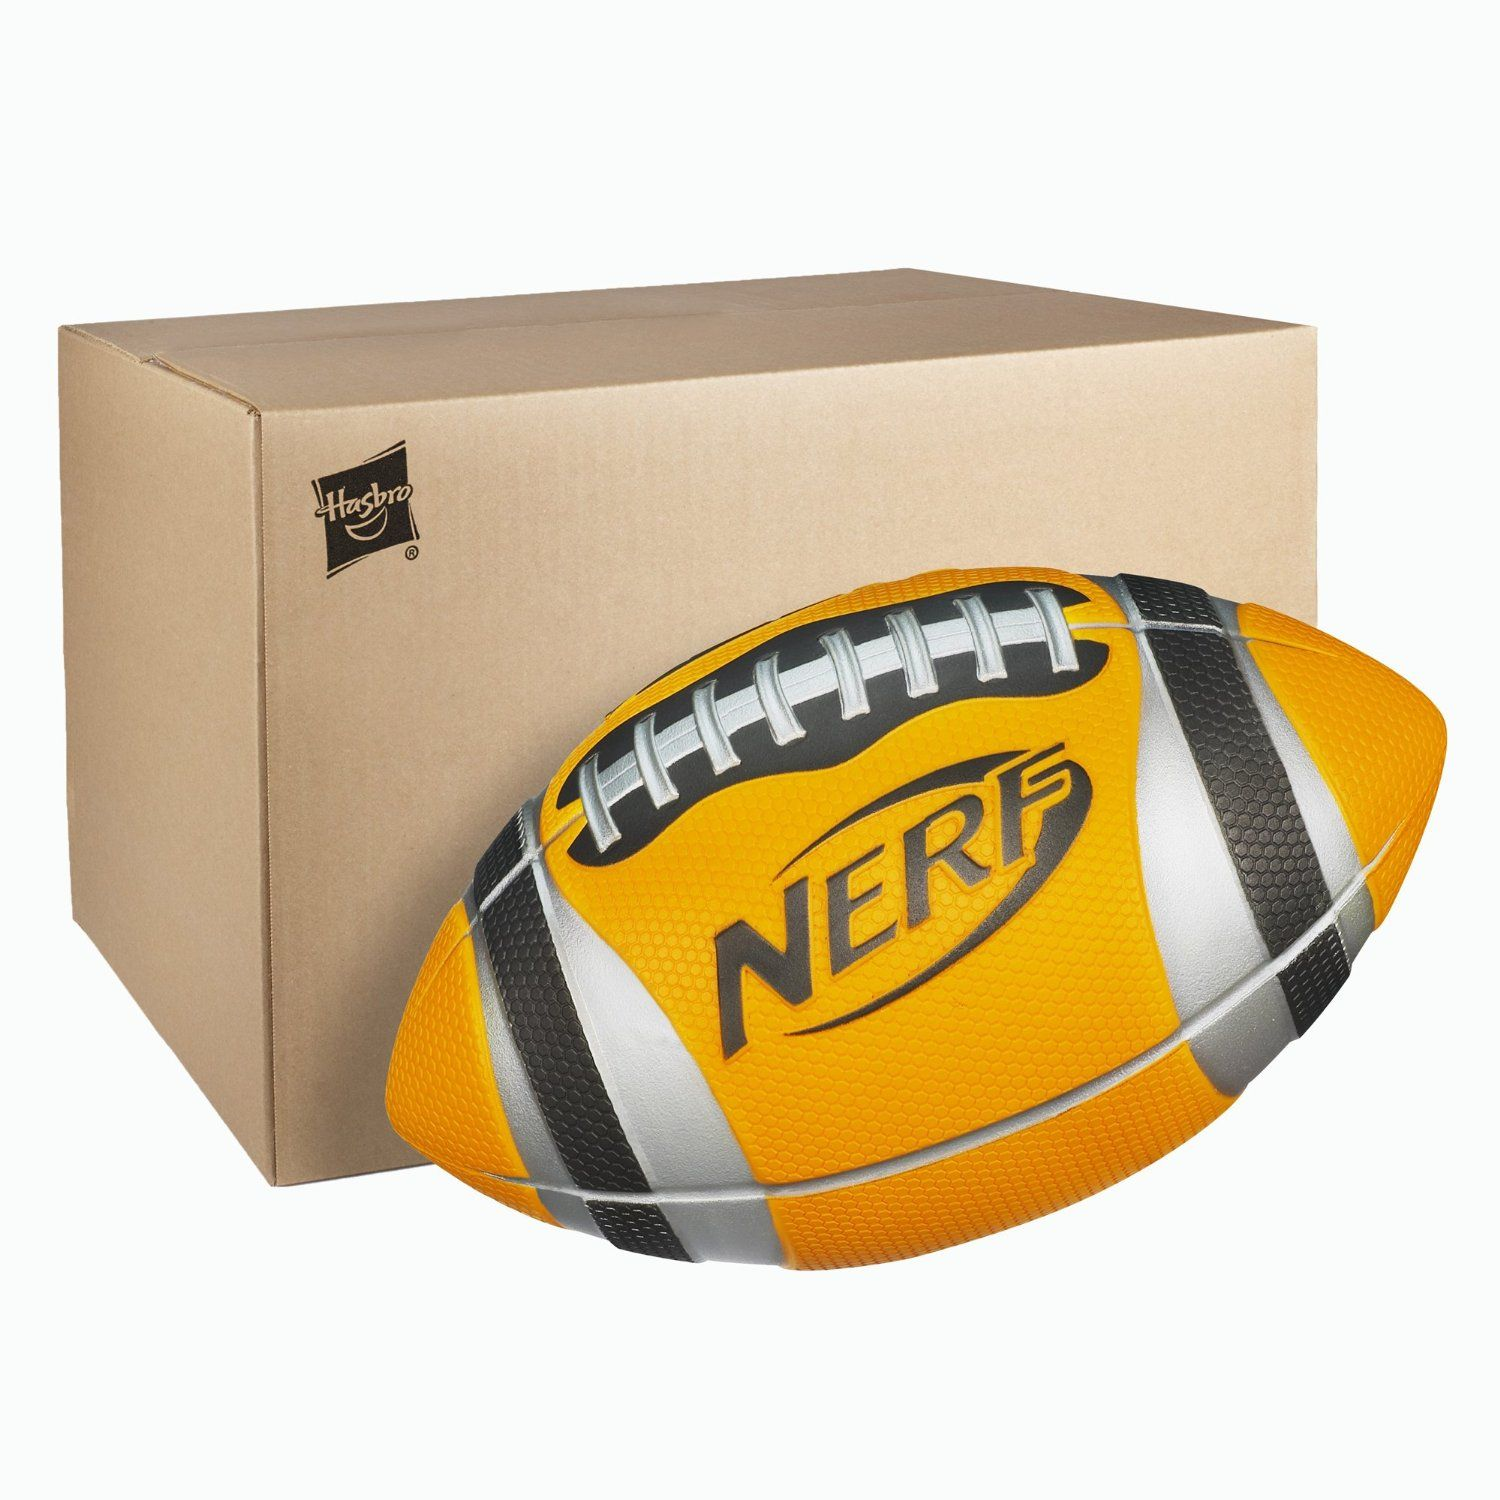 Nerf N Sports Pro Grip Football Orange See more at toy